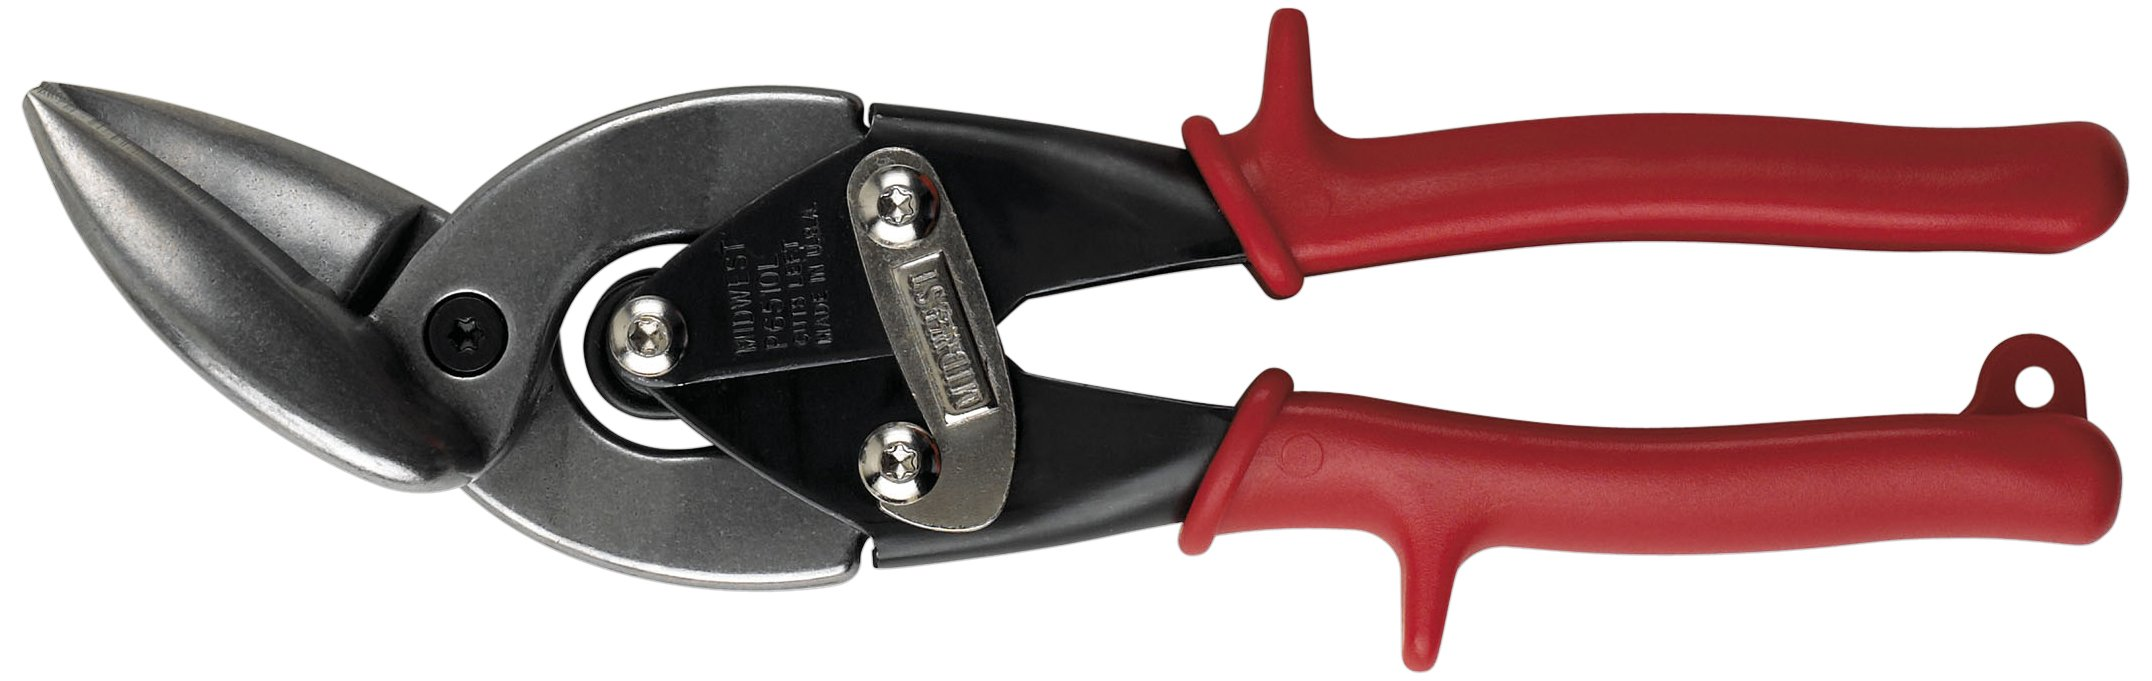 Wright Tool 9P6510L Left Cutting Midwest Offset Snips